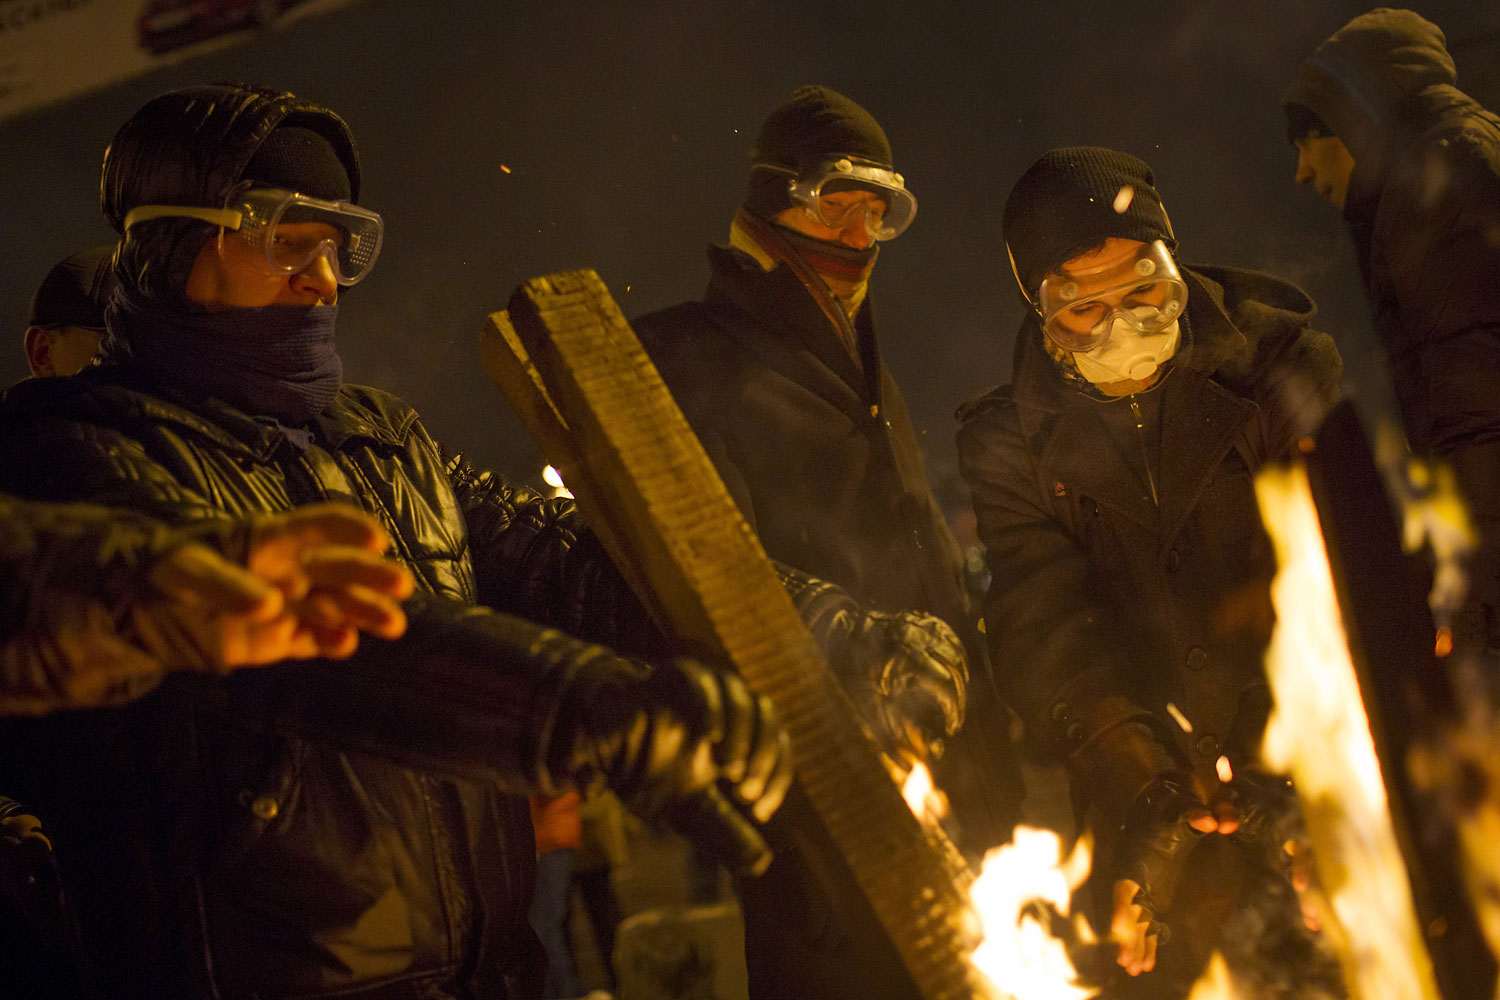 Protestors gather around a fire during a stand off with police on Jan. 23, 2014 in Kiev.